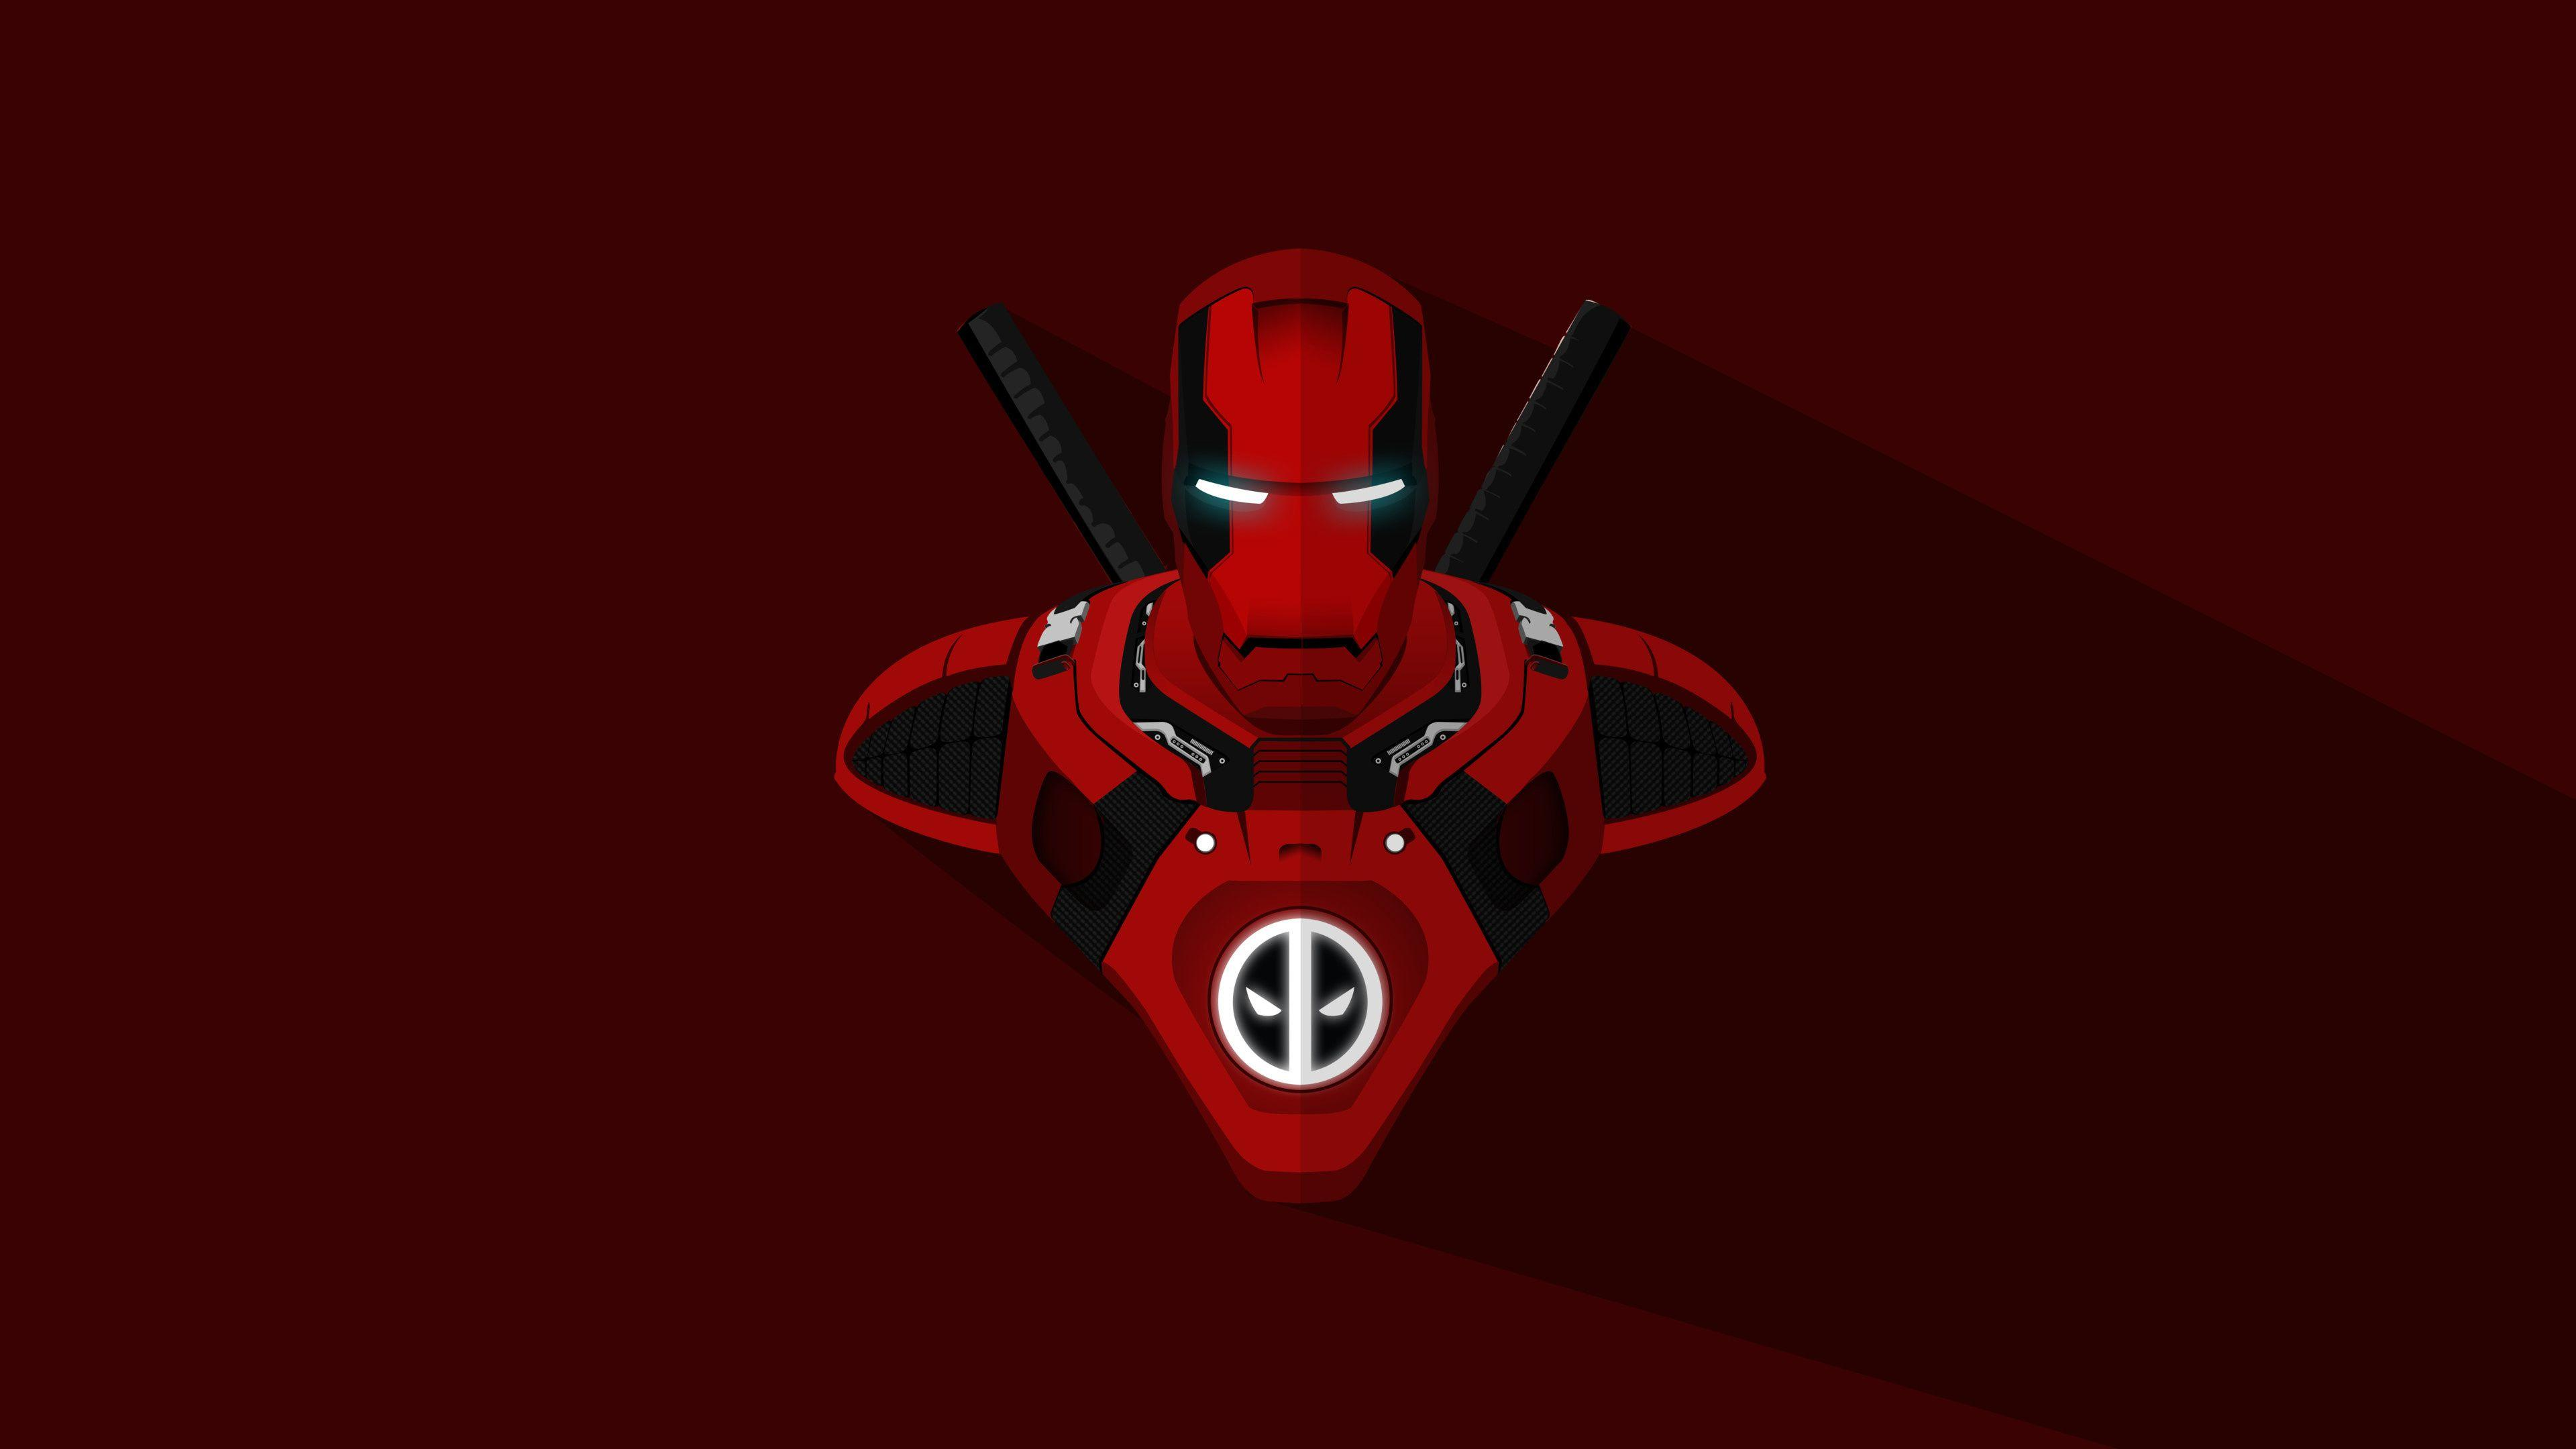 Download 3840x2400 wallpapers iron man, deadpool, crossover, marvel